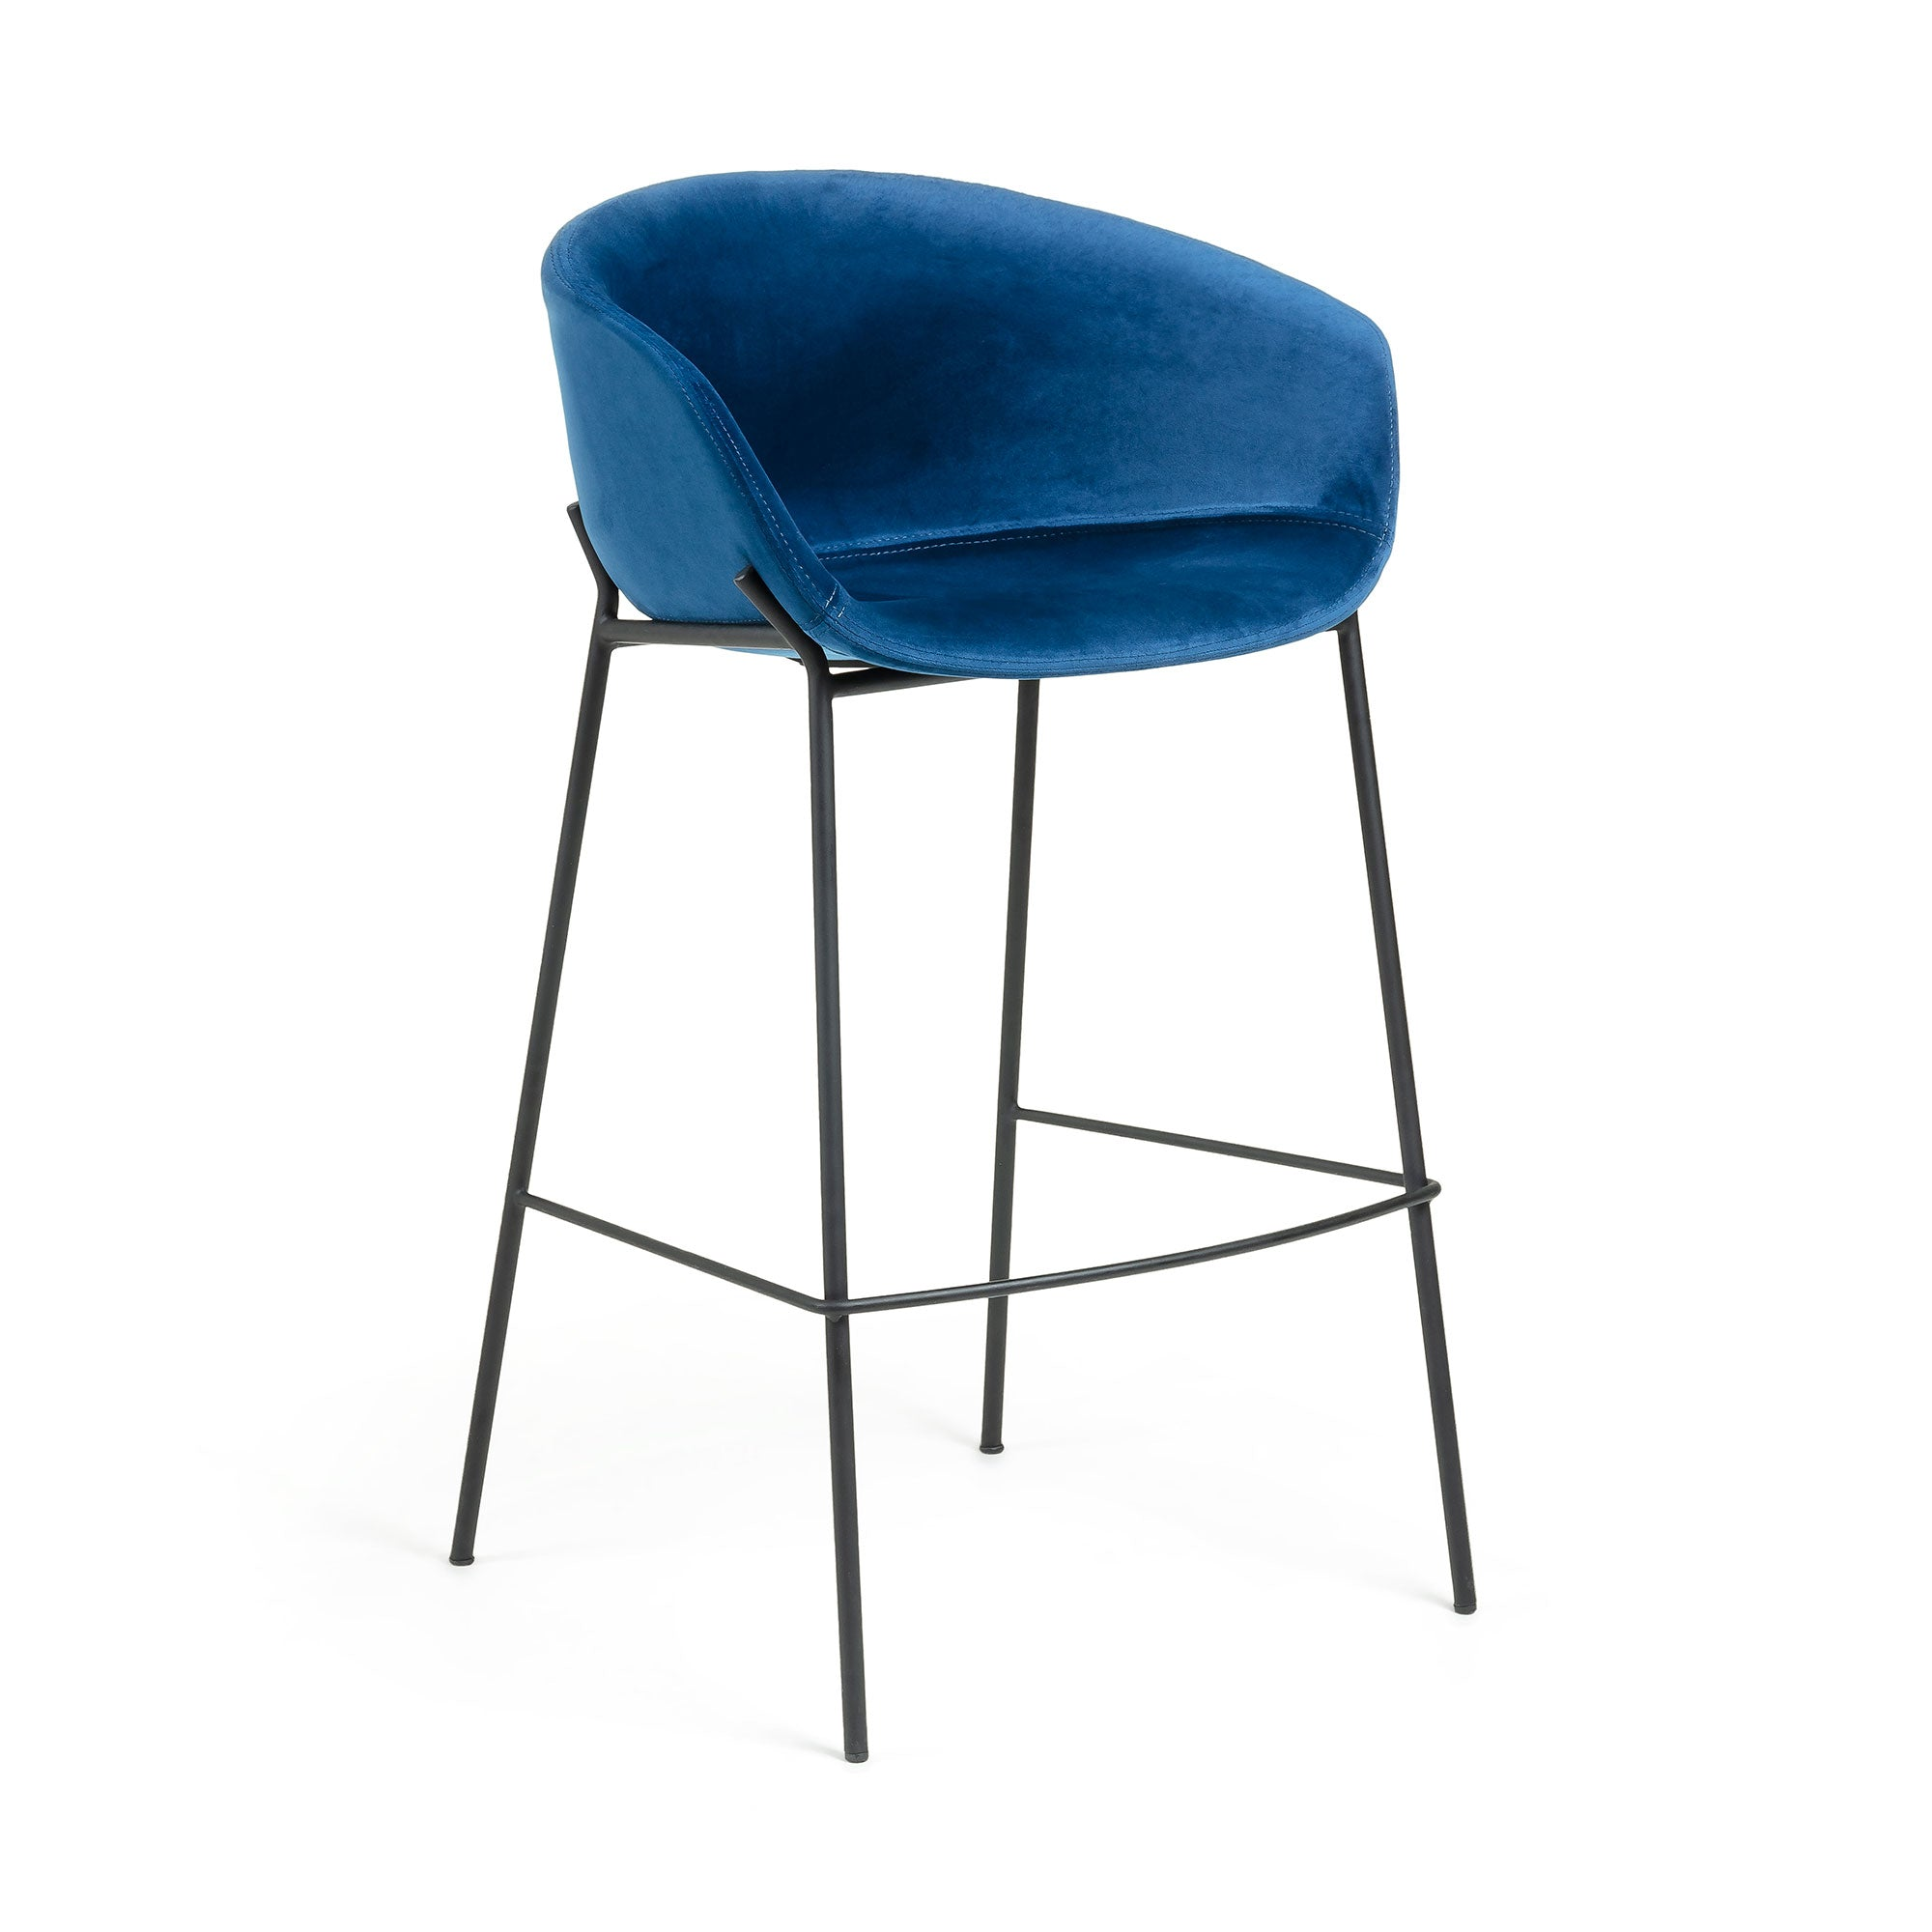 Modine Bench Barstool | Royal Blue Velvet